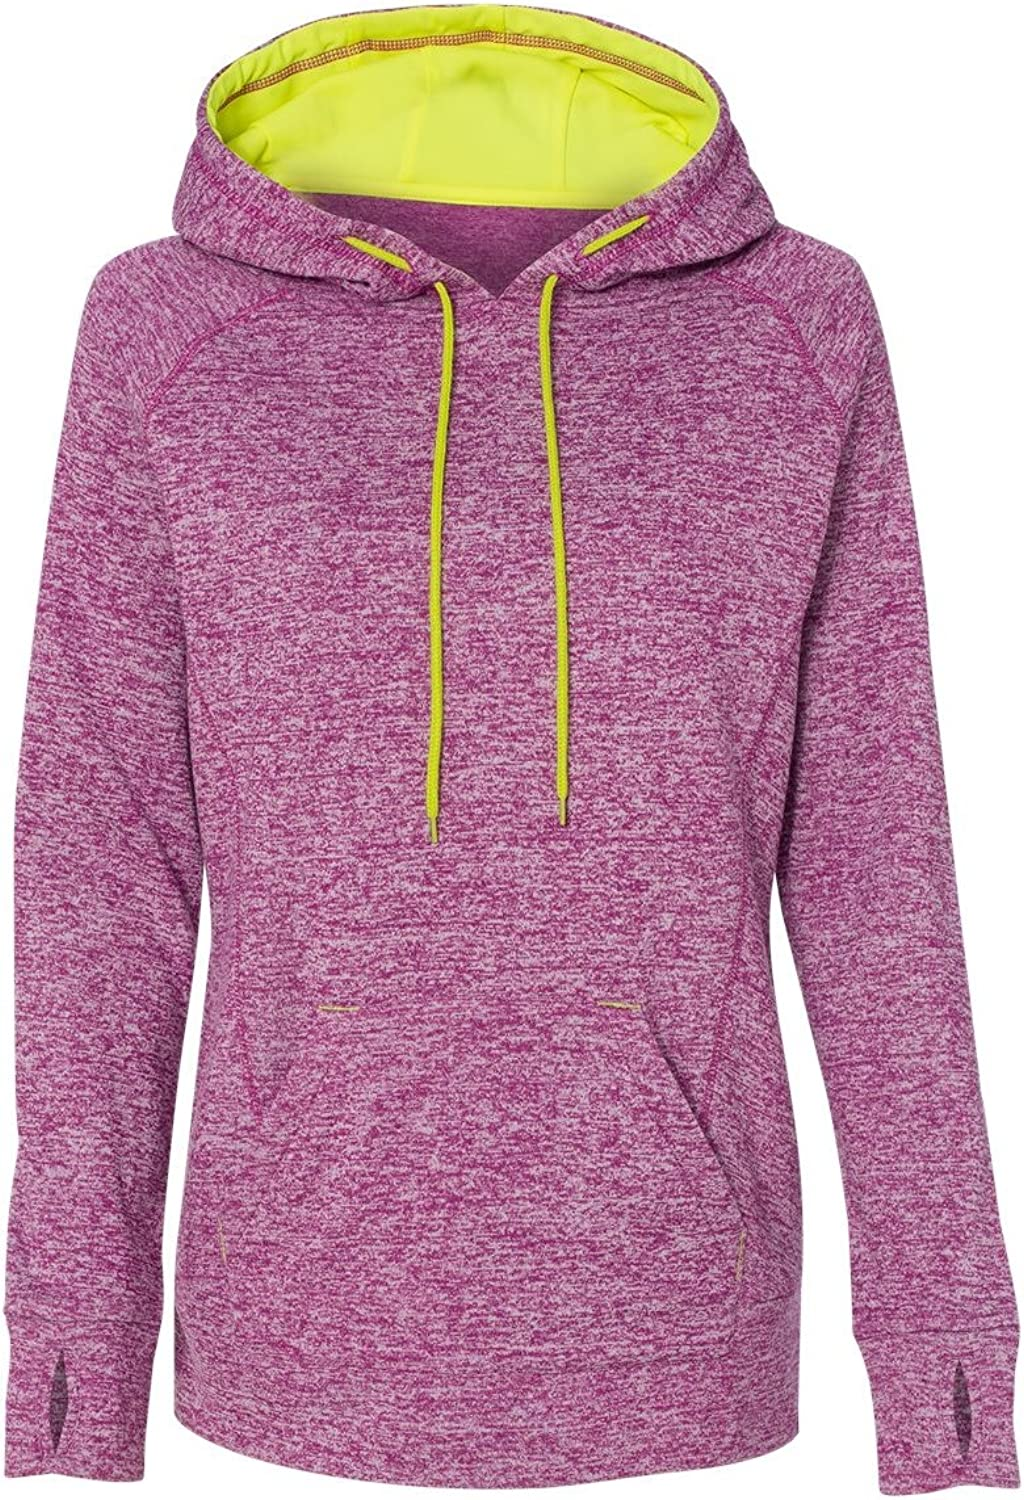 Ladies' Cosmic Contrast Fleece Hood MAGENTA  NEON YL 2XL